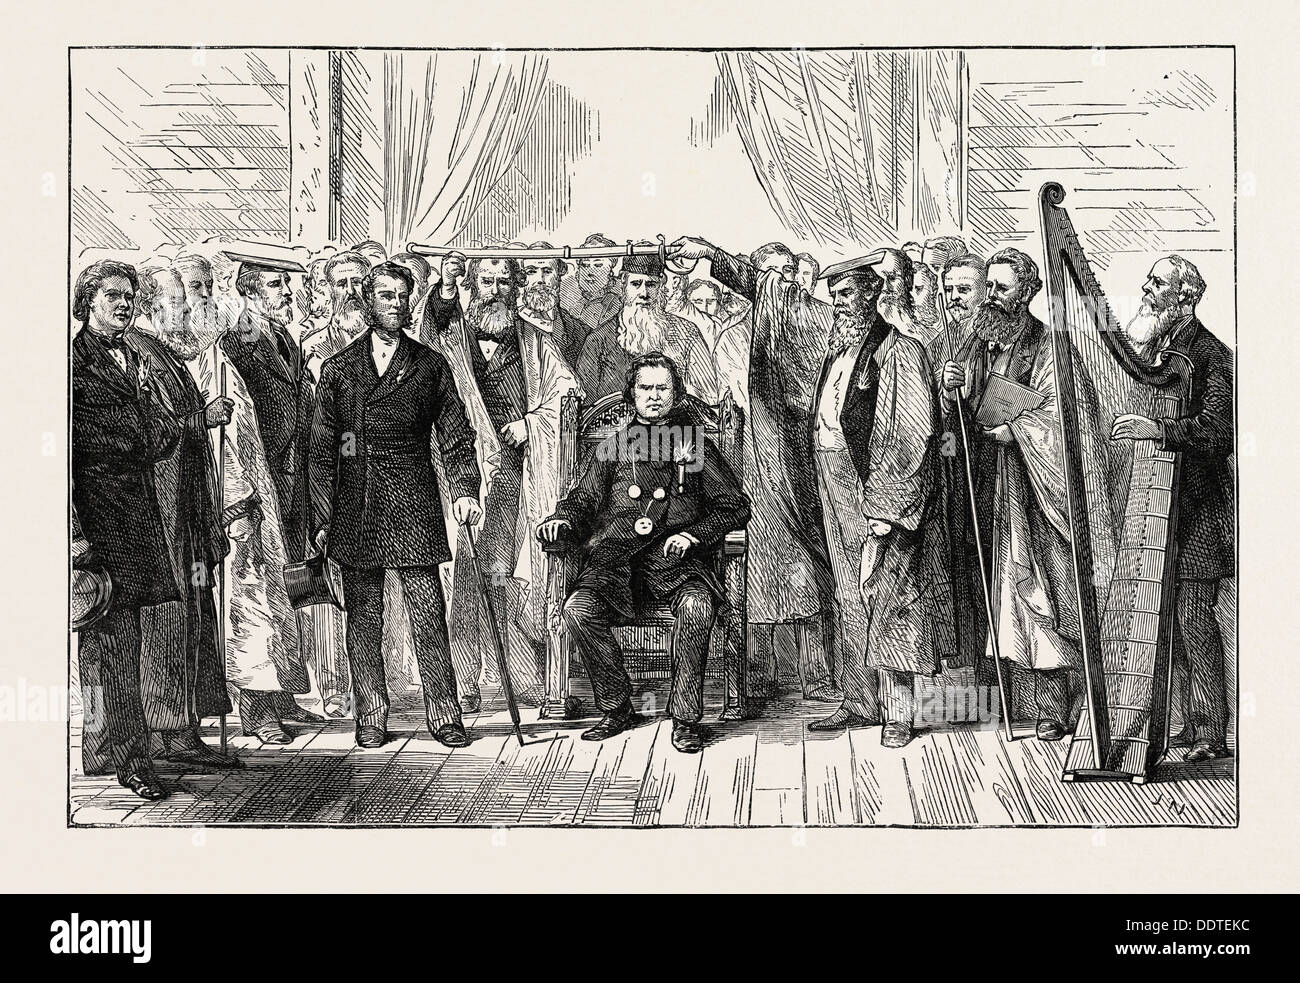 THE MOLD EISTEDDFOD: CHAIRING THE BARD, WALES, UK, 1873 engraving - Stock Image